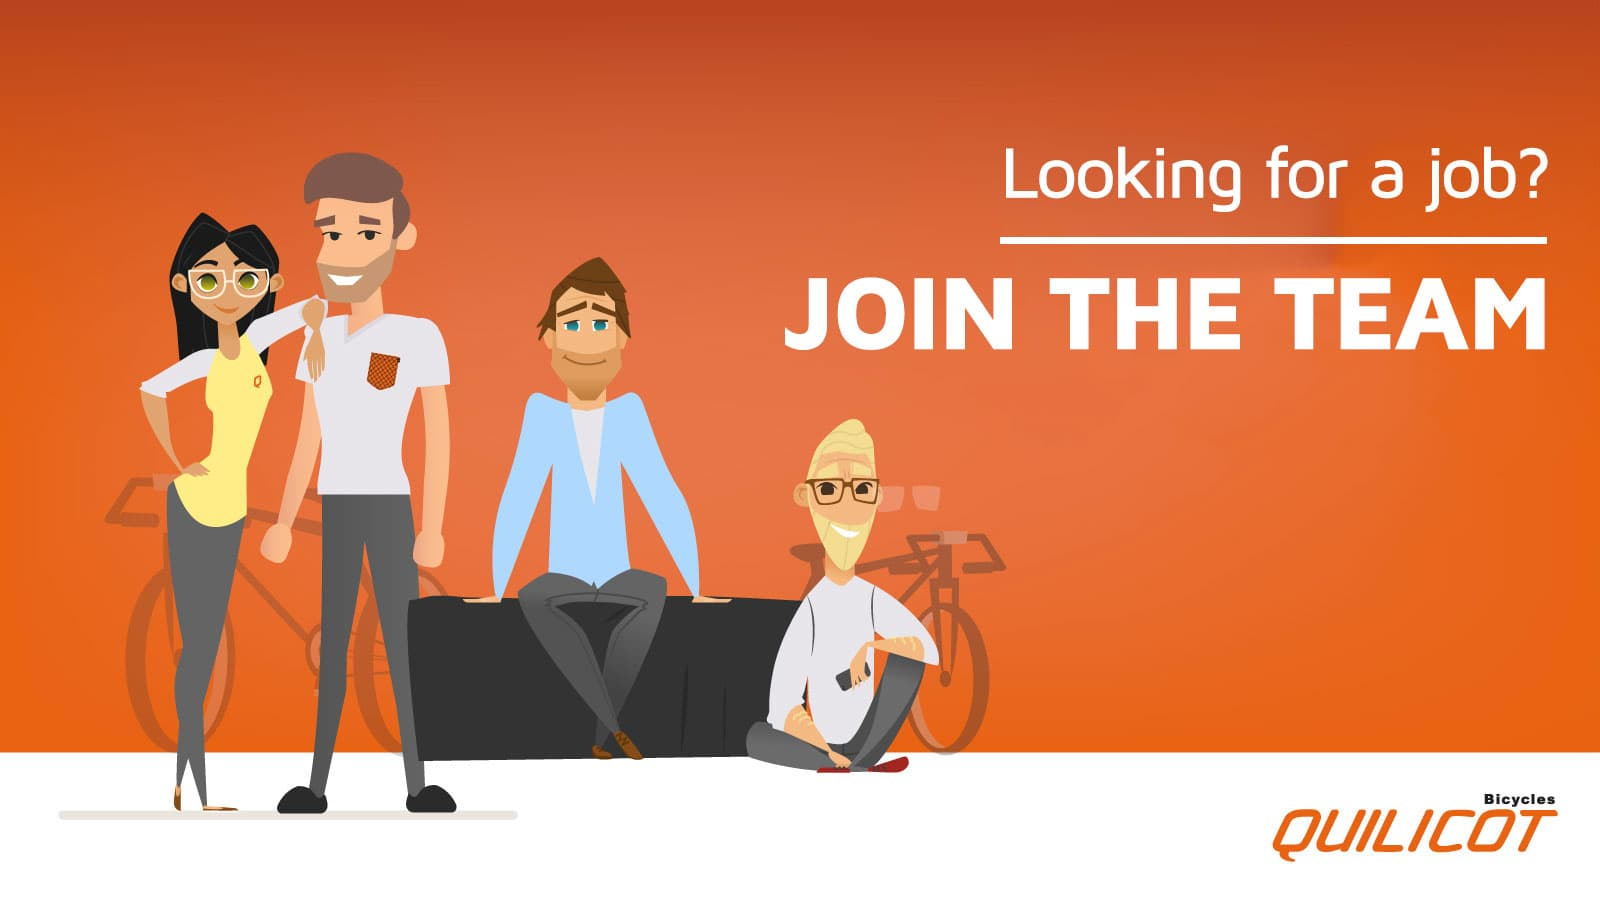 Careers - Join the team Quilicot